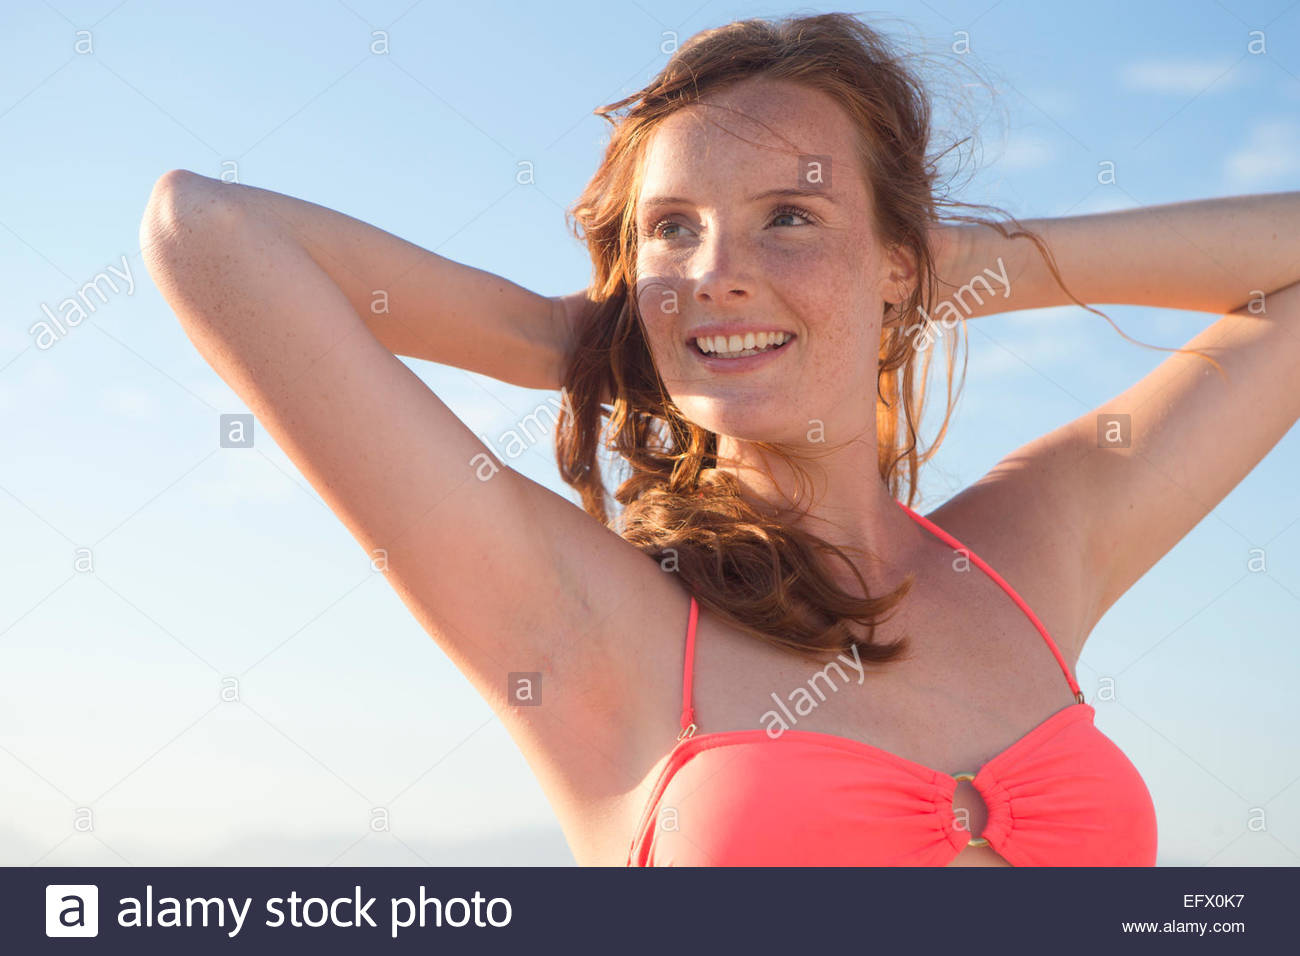 Smiling woman, with arms raised behind head, on sunny beach Stock Photo